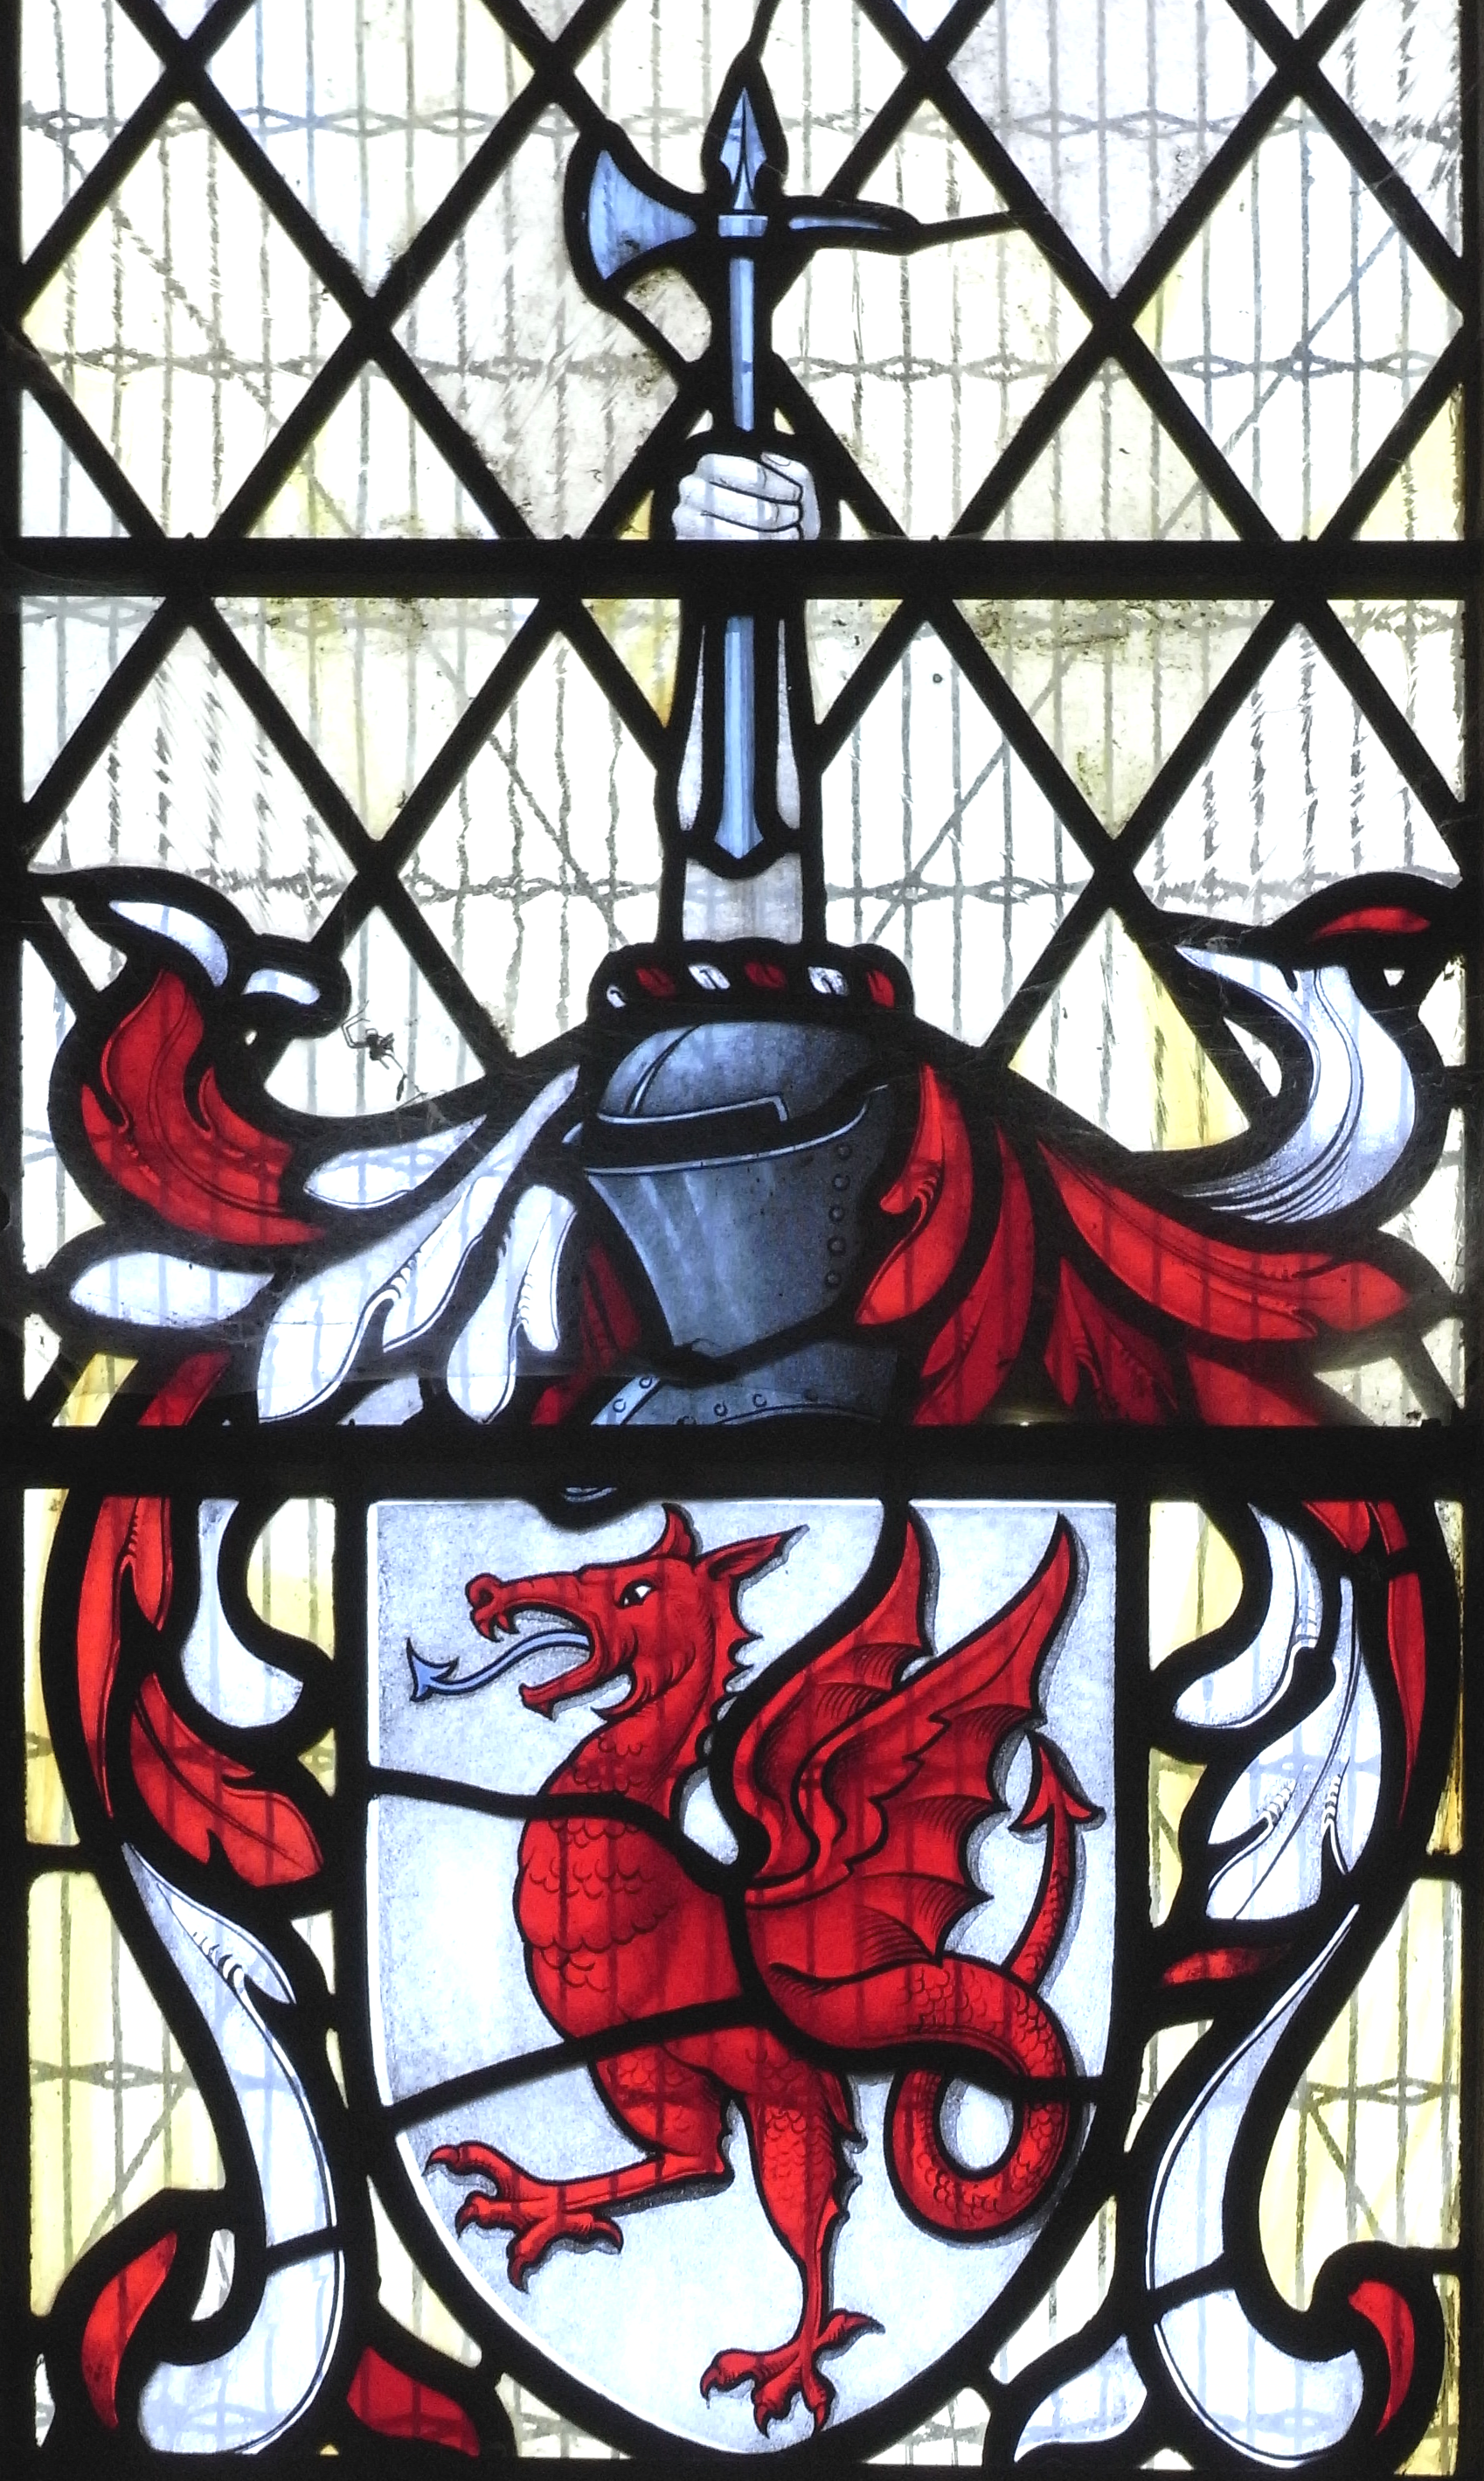 Armorials Of The Drake Family Of Ash In The Parish Of Musbury Devon Argent A Wyvern Wings Displayed And Tail N Stained Glass Tattoo Coat Of Arms Sir Francis